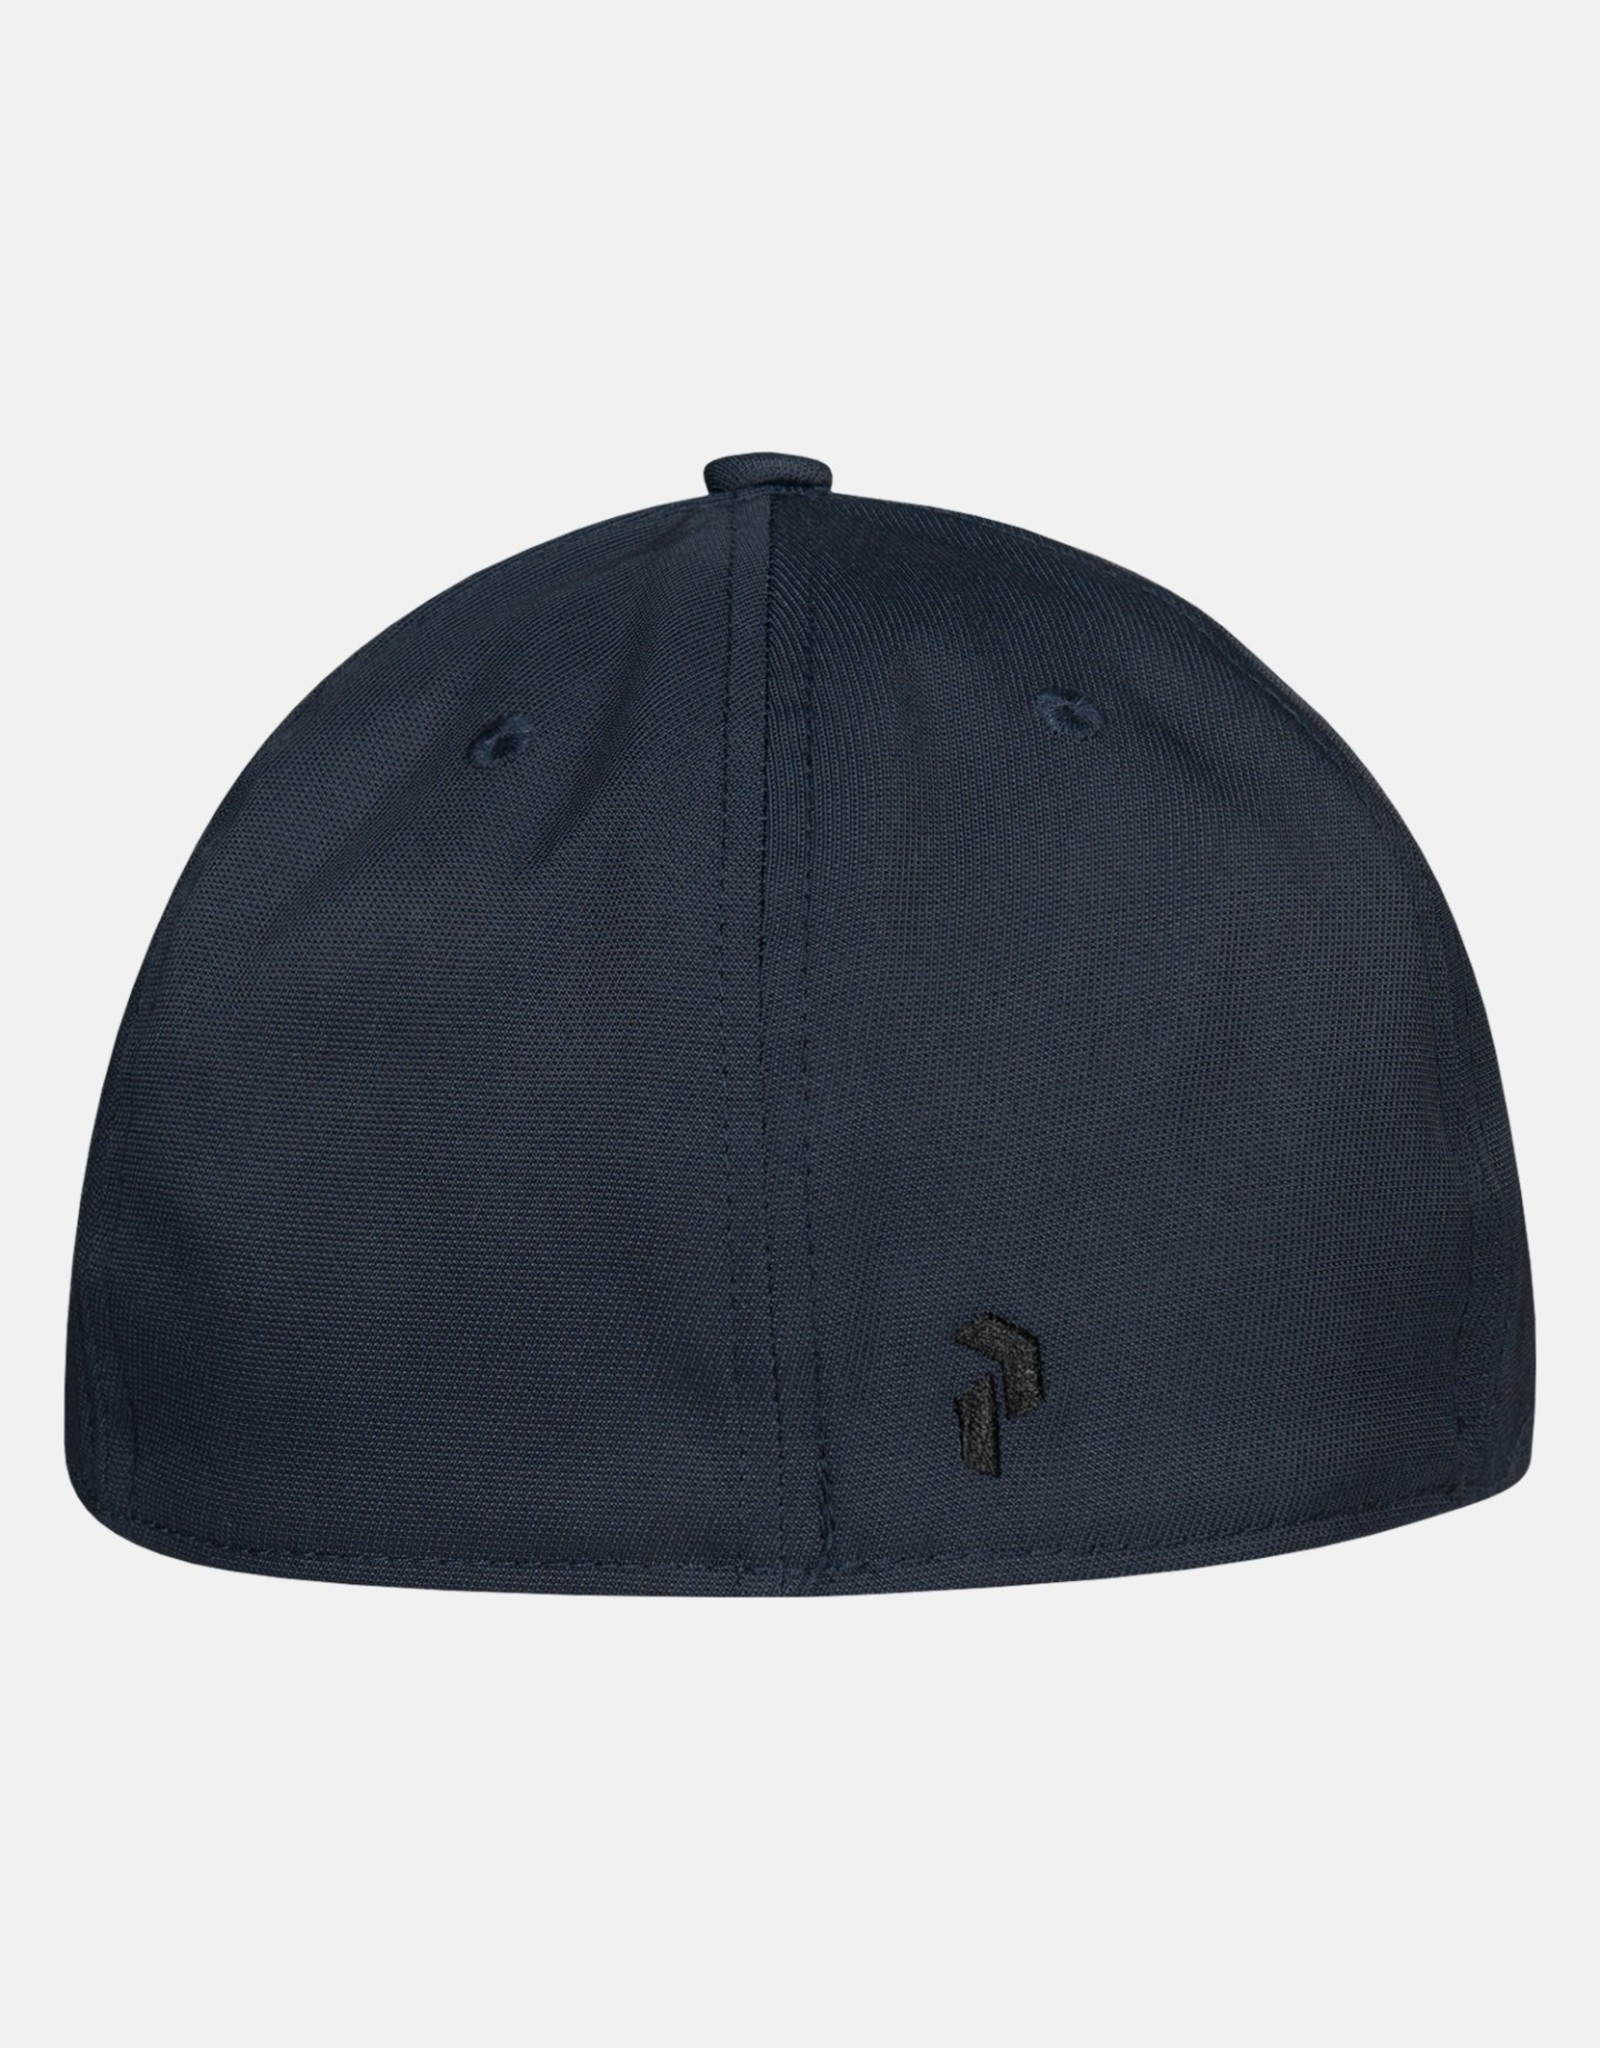 Peak Performance Peak Performance Path Cap - S2020